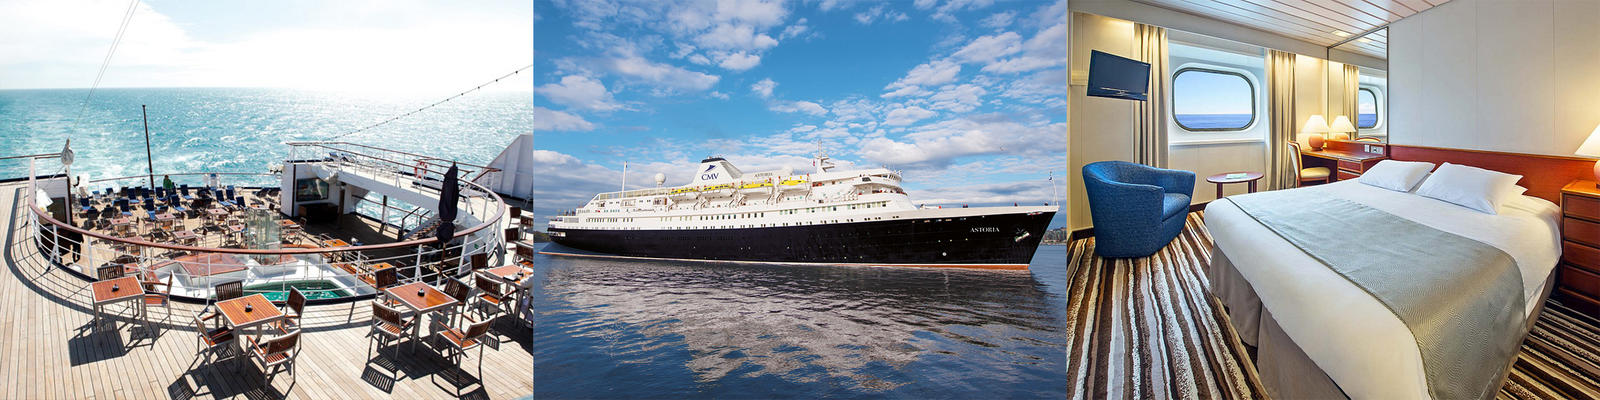 cruise and maritime voyages reviews